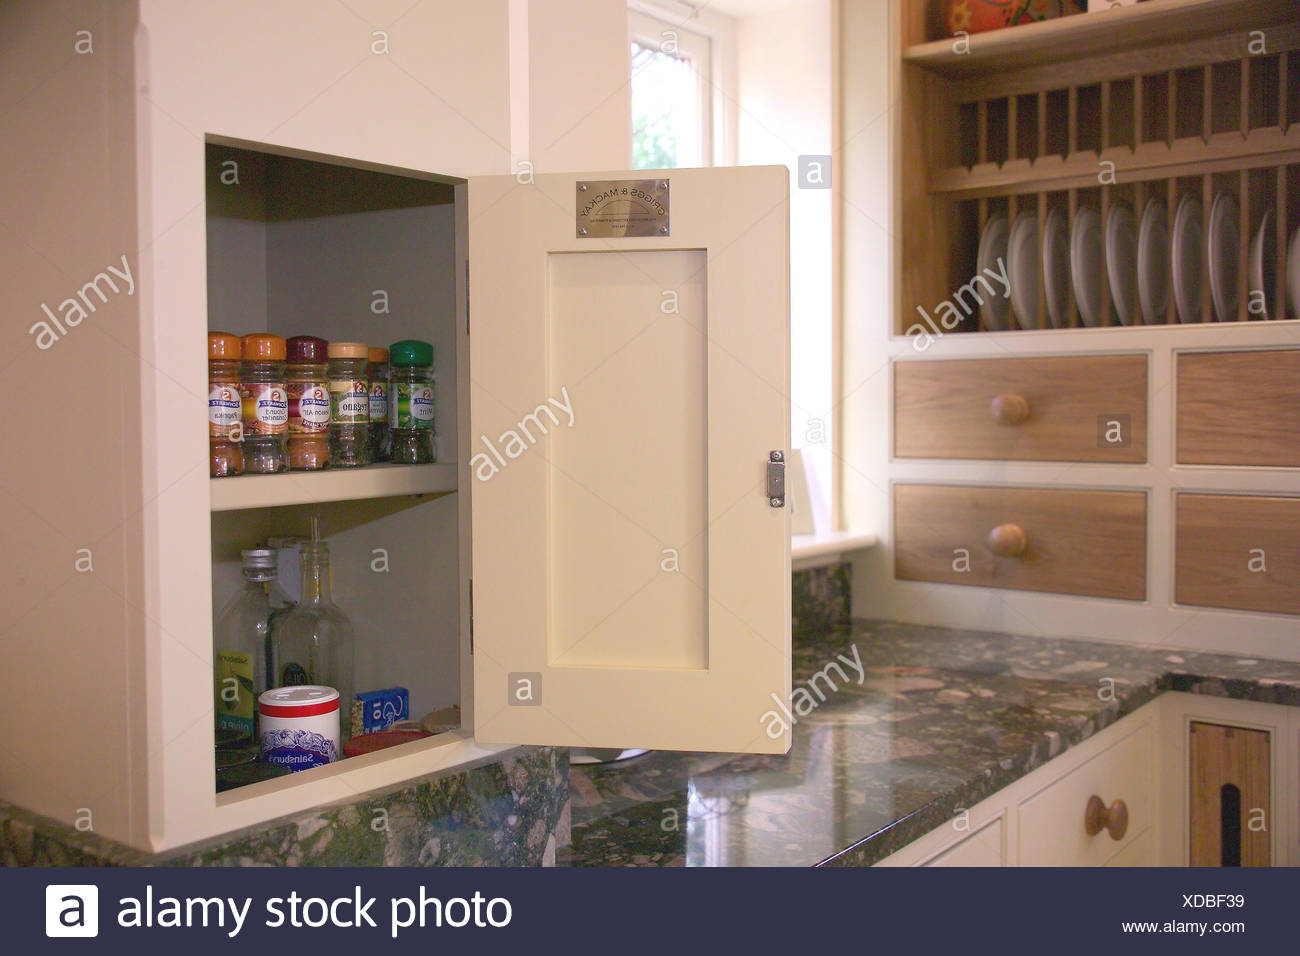 Image of: Kitchen Cupboard With Door Open On Spice Jars Stored On Shelves Stock Photo Alamy